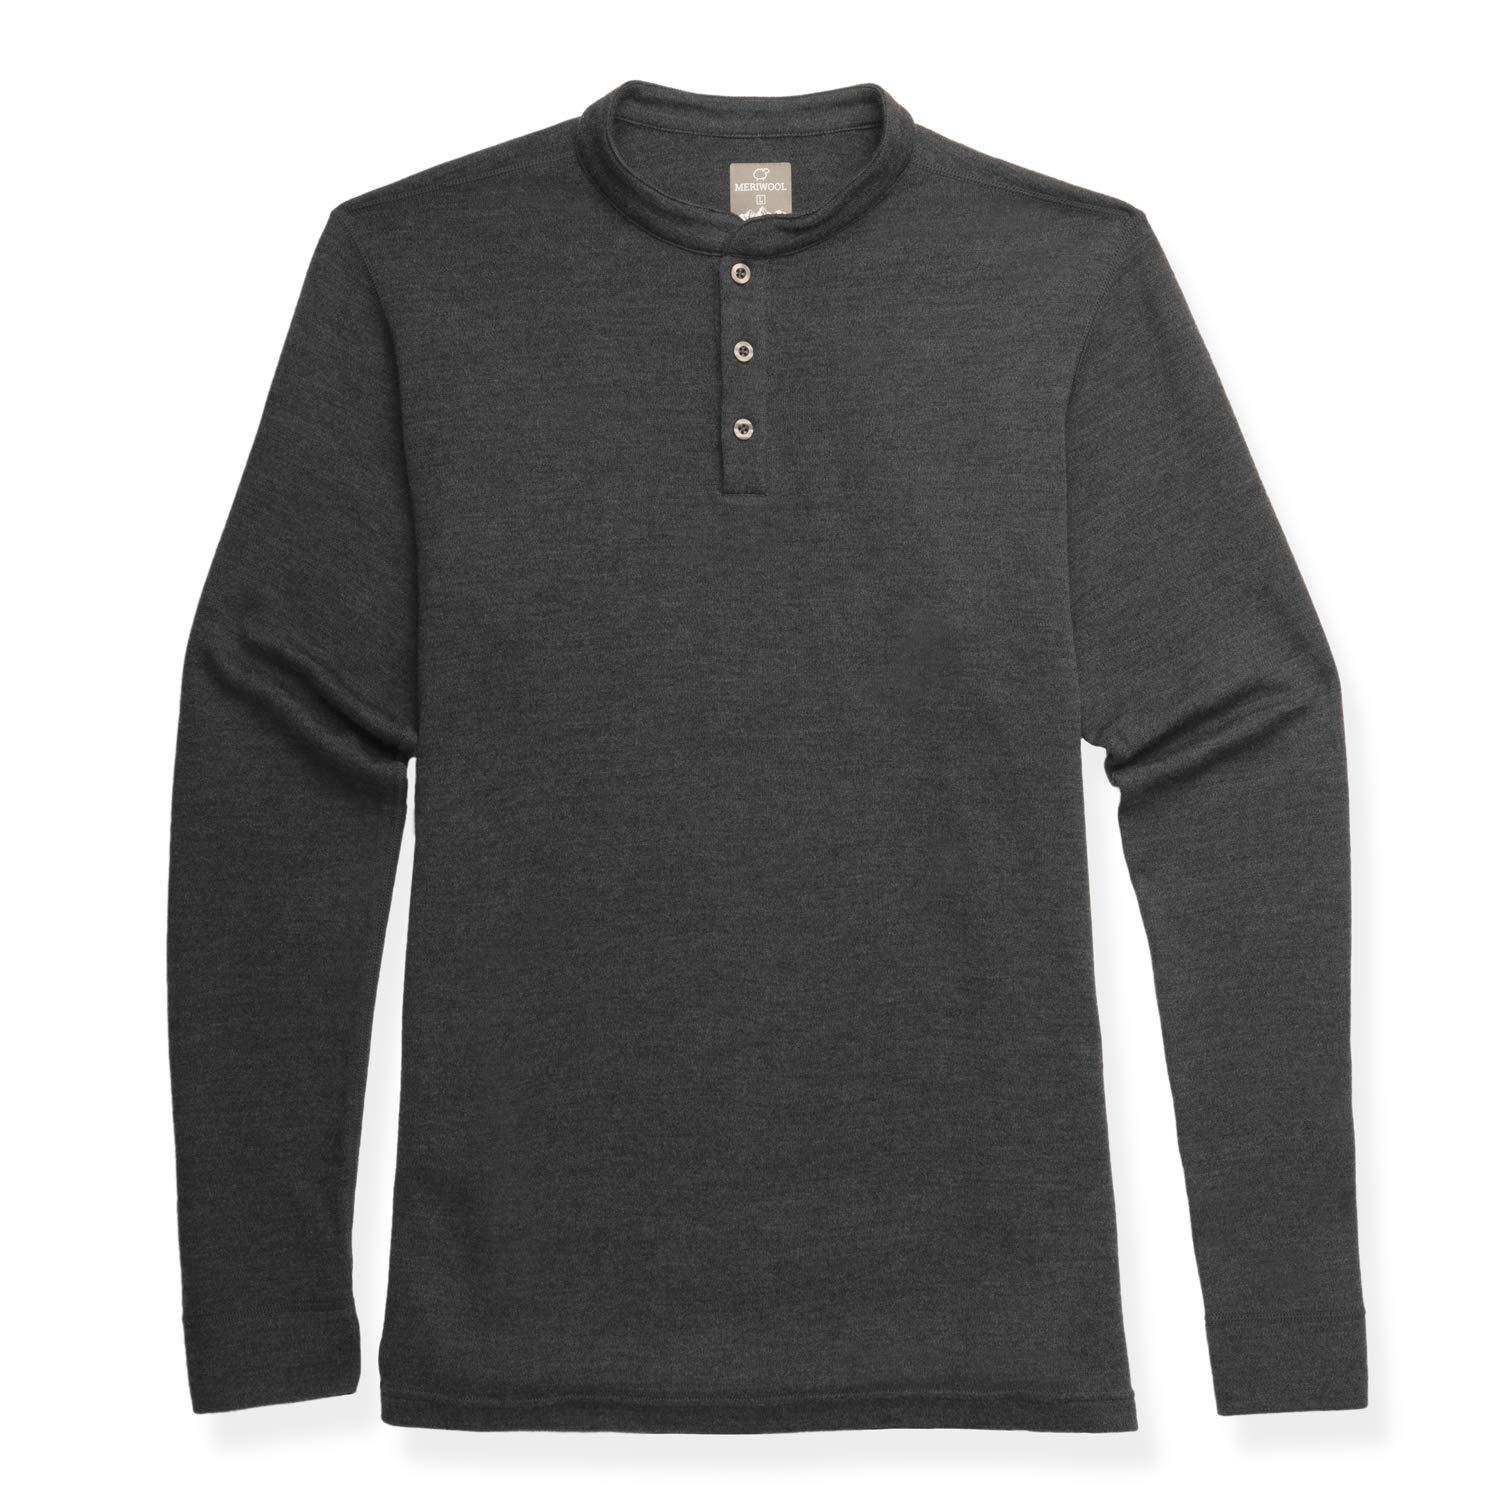 4e019bc2 MERIWOOL Mens Merino Wool Heavyweight Thermal Henley Pullover Top at Amazon  Men's Clothing store: